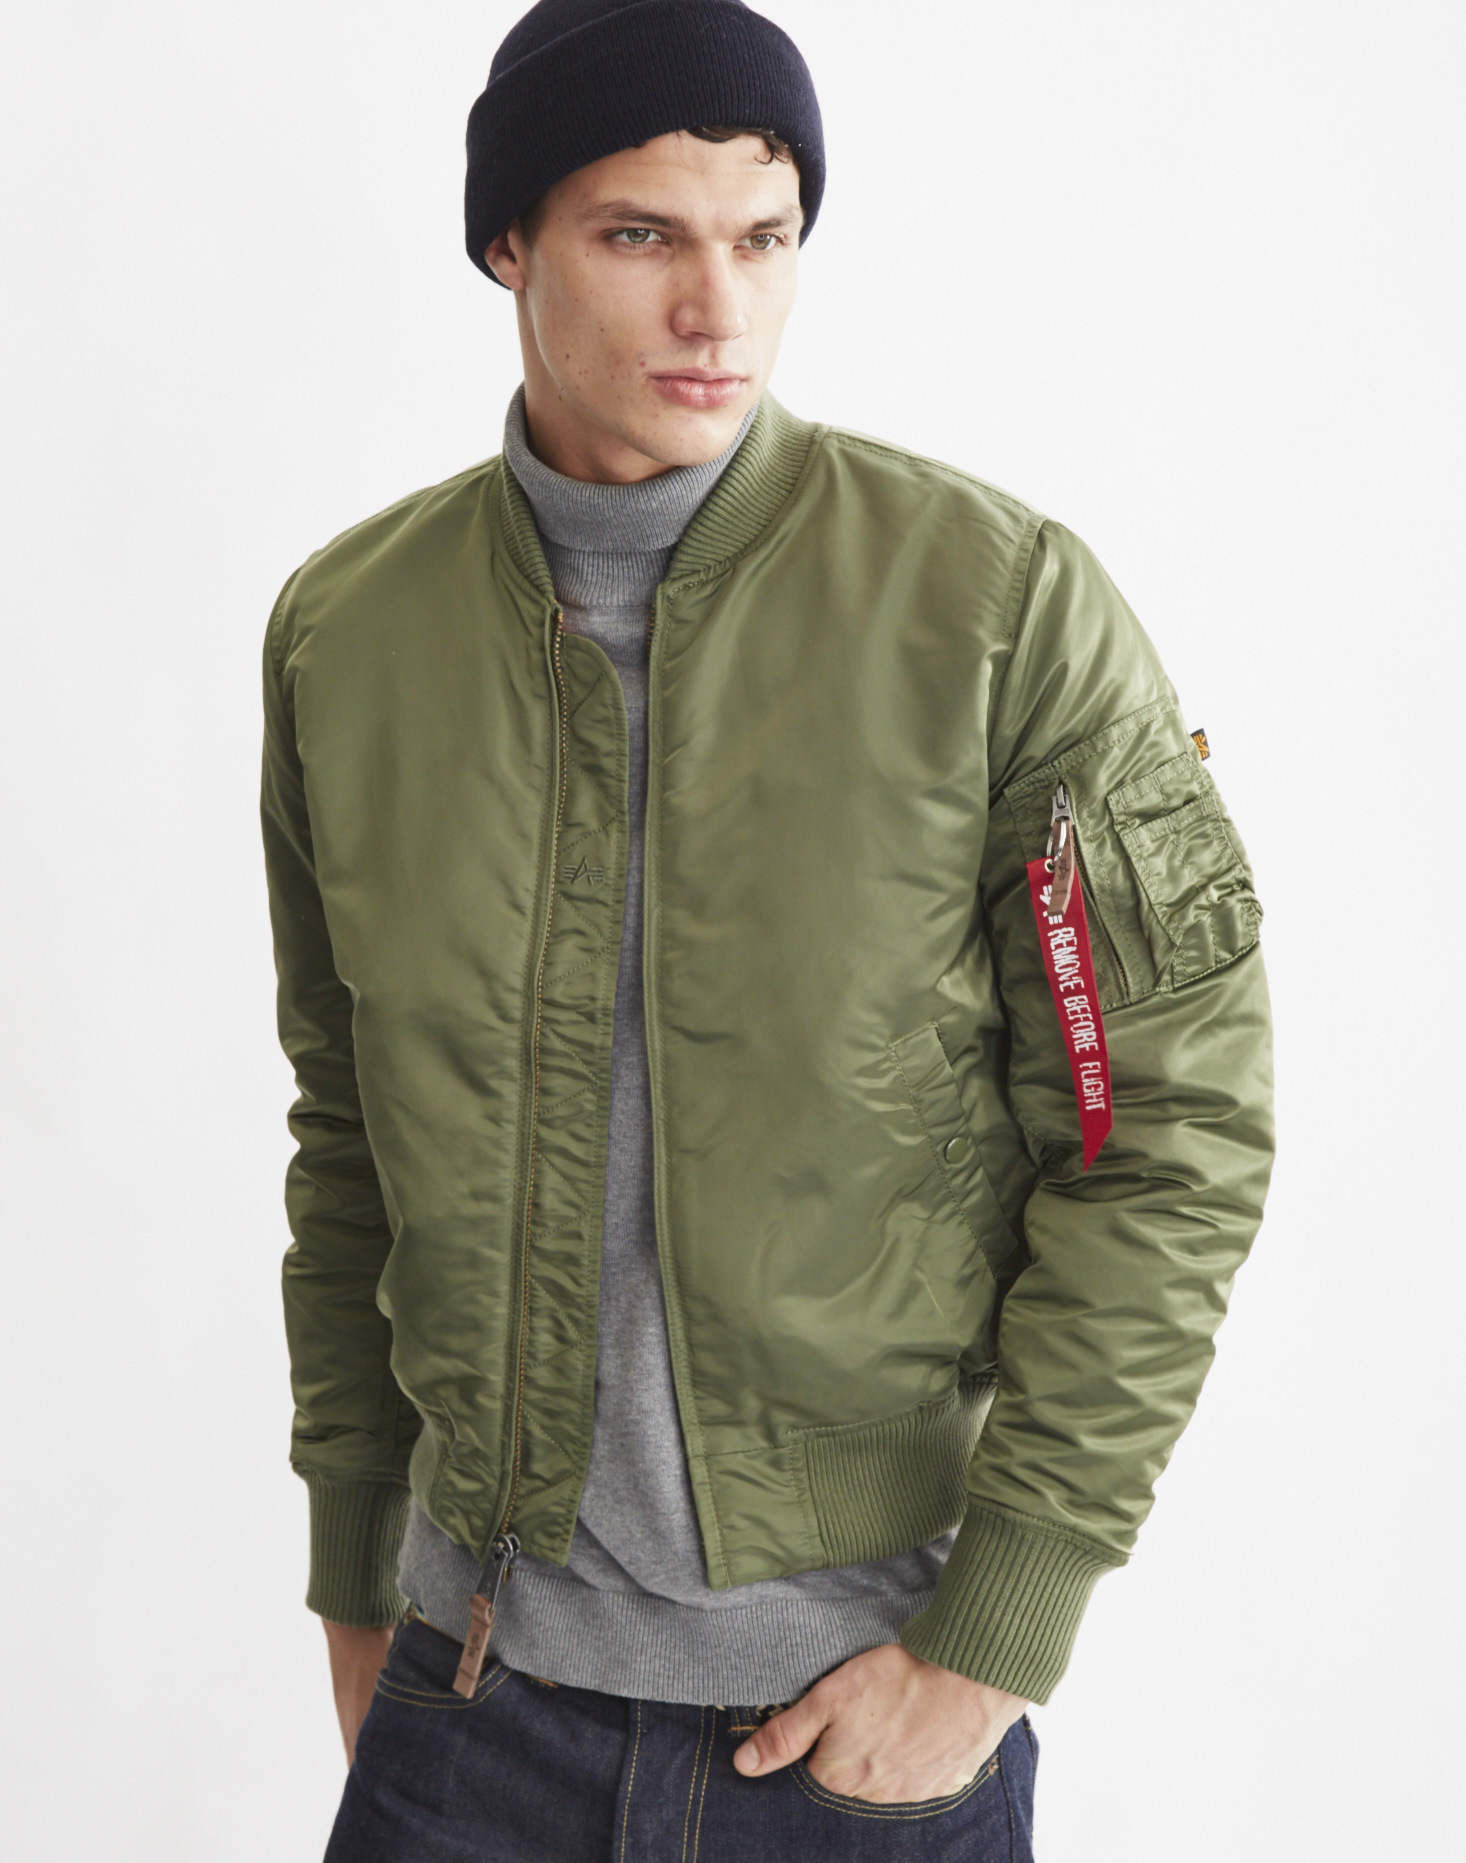 e32237b680f Alpha Industries ma-1 Olive Bomber Size s - Bombers for Sale - Grailed